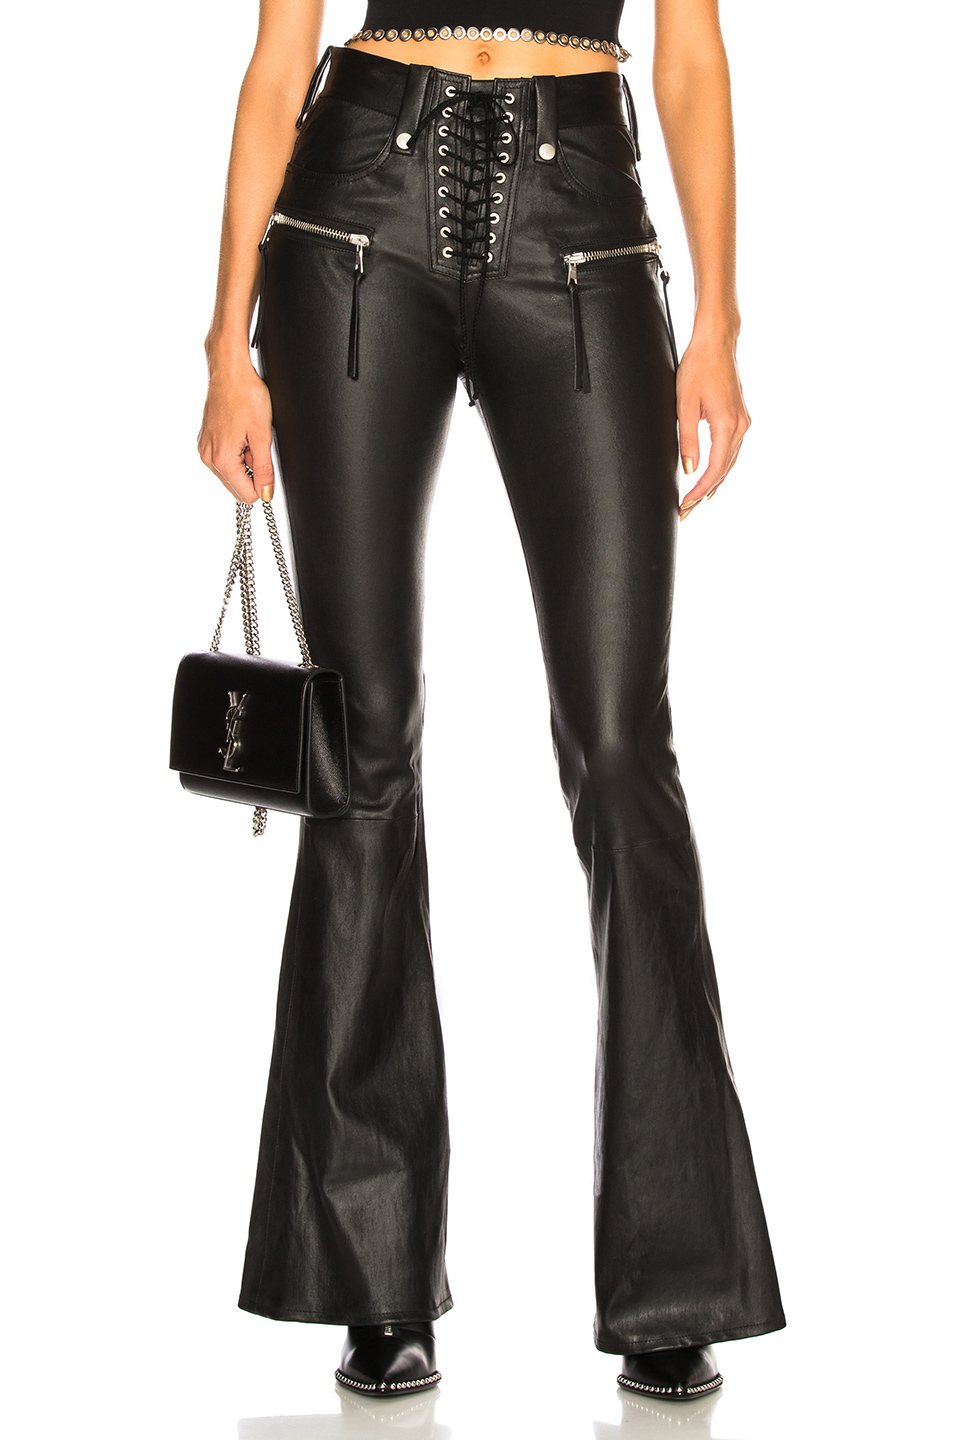 Leather Lace Up Flare by Unravel, available on fwrd.com for $1482 Kendall Jenner Pants Exact Product